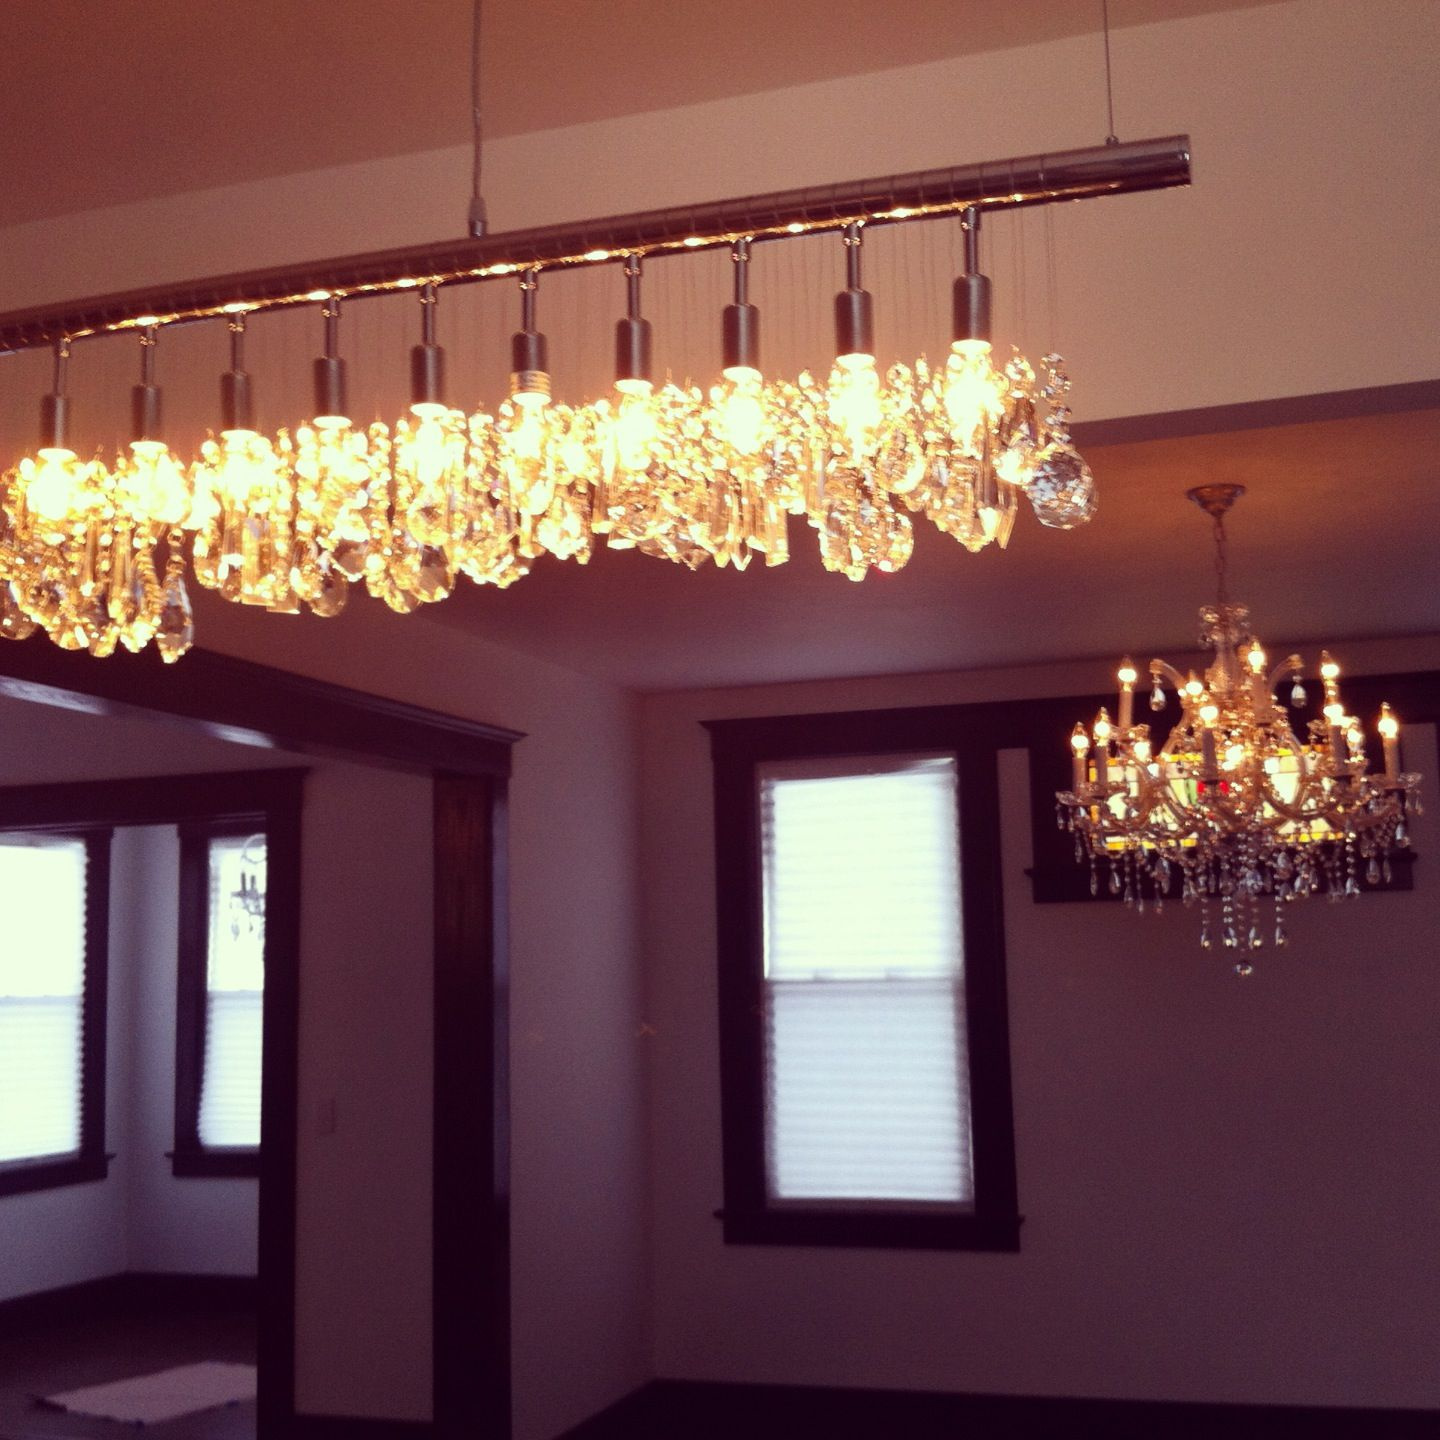 Just installed my linear chandelier on top of my kitchen island